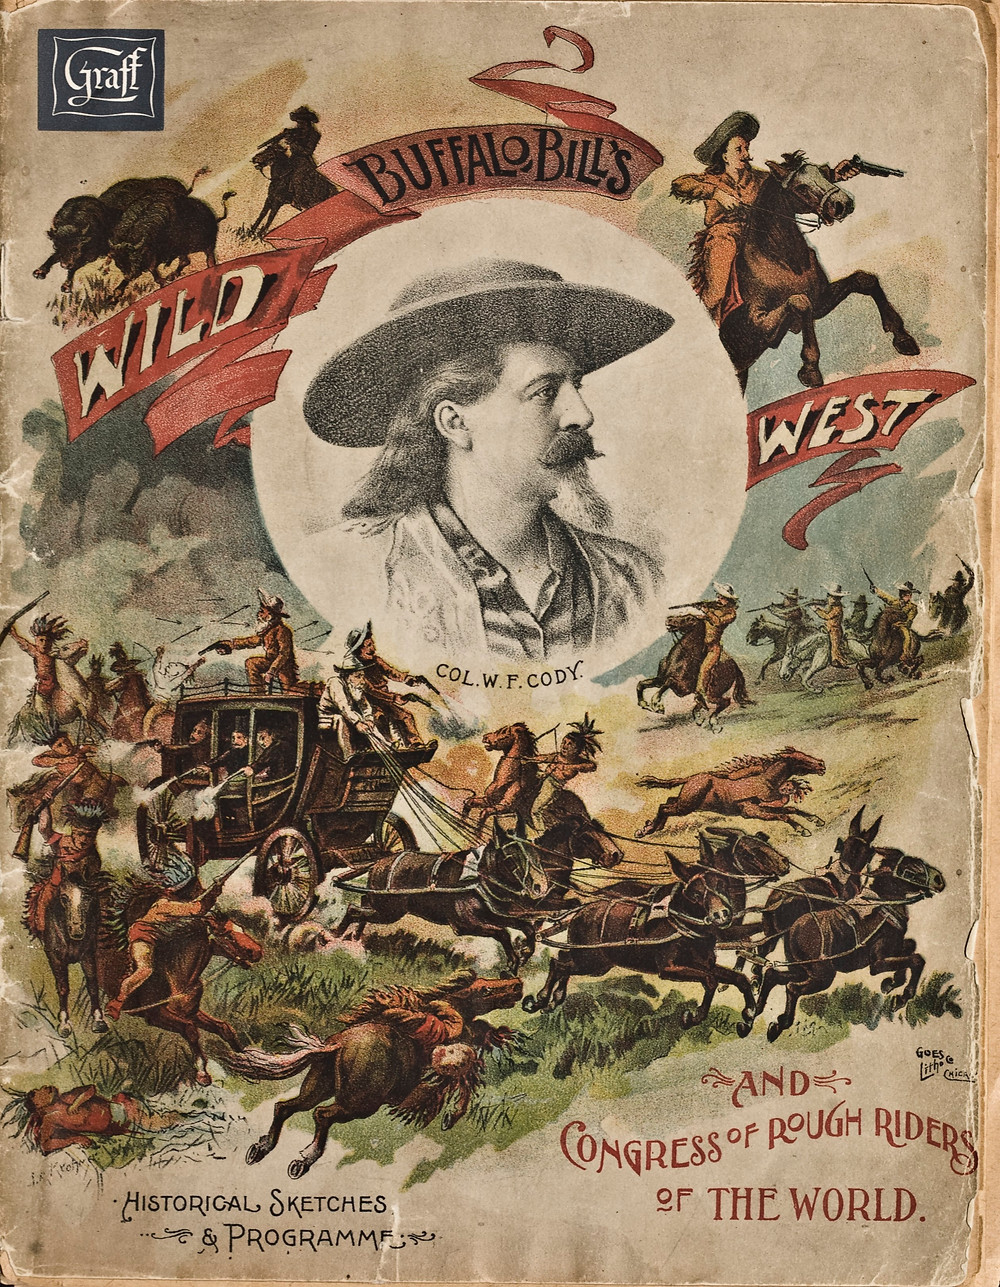 Buffalo_Bill_wild_west_Cover.jpg